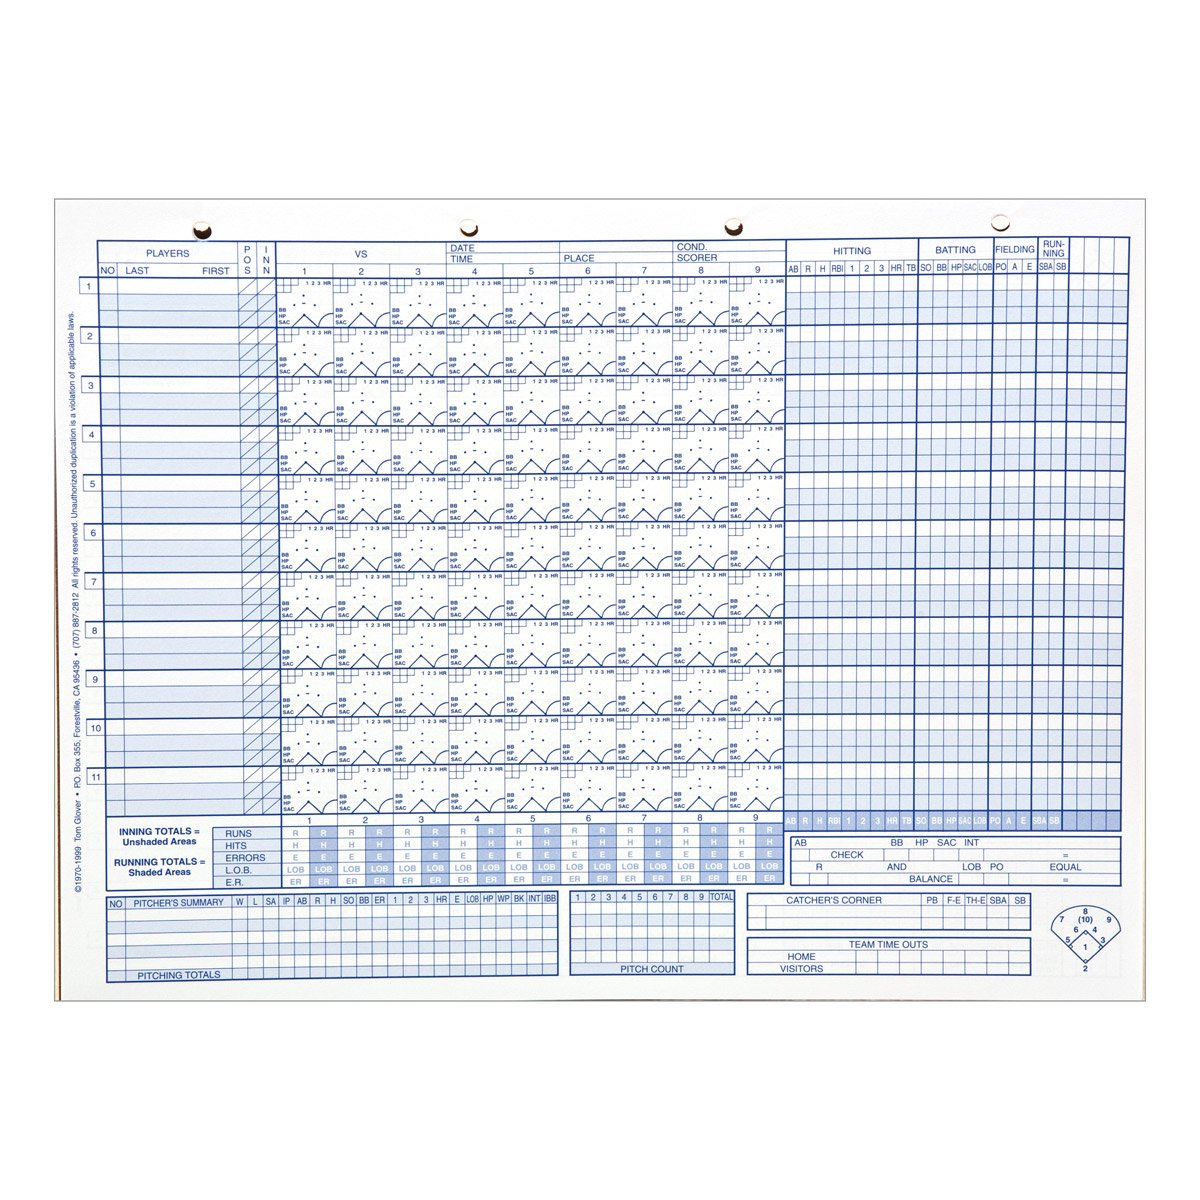 Amazon.com : Glovers Scorebooks Baseball/Softball 50 Scoring Sheets (No  Stats) : Coach And Referee Scorebooks : Sports U0026 Outdoors